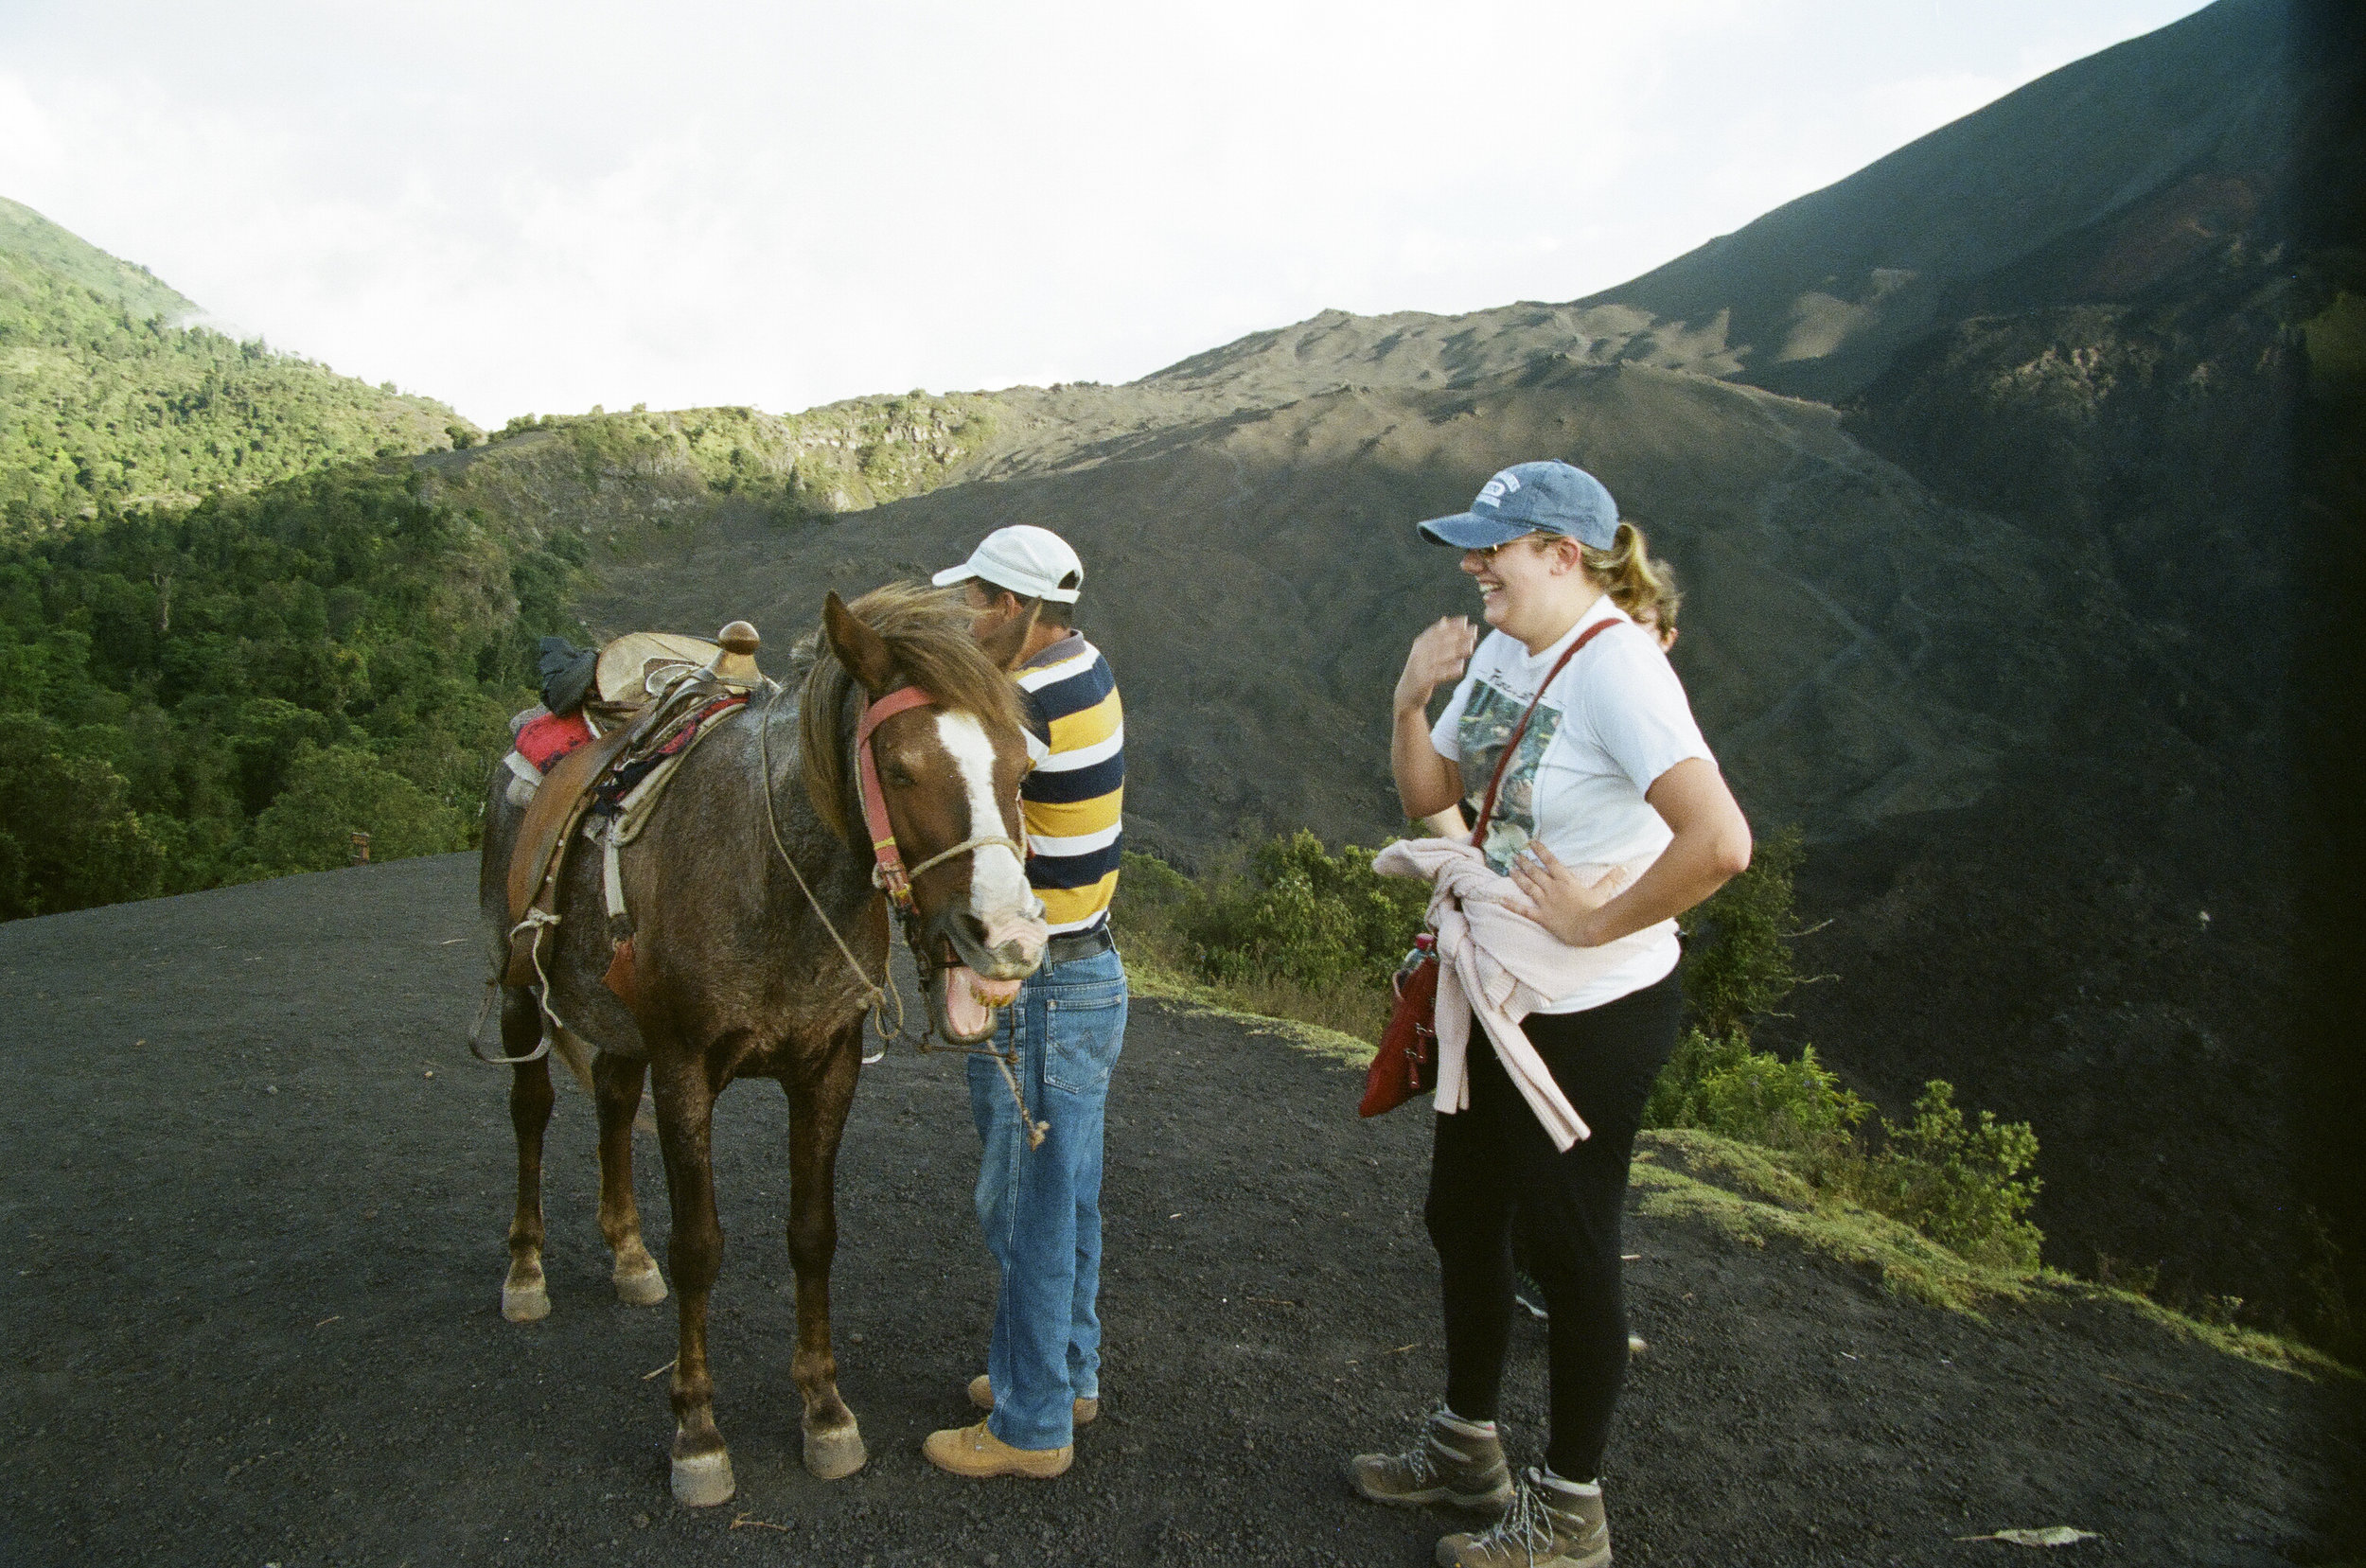 Lots of laughs all around when Ashton couldn't get off her horse and ended up being cradled in her guide's arms.